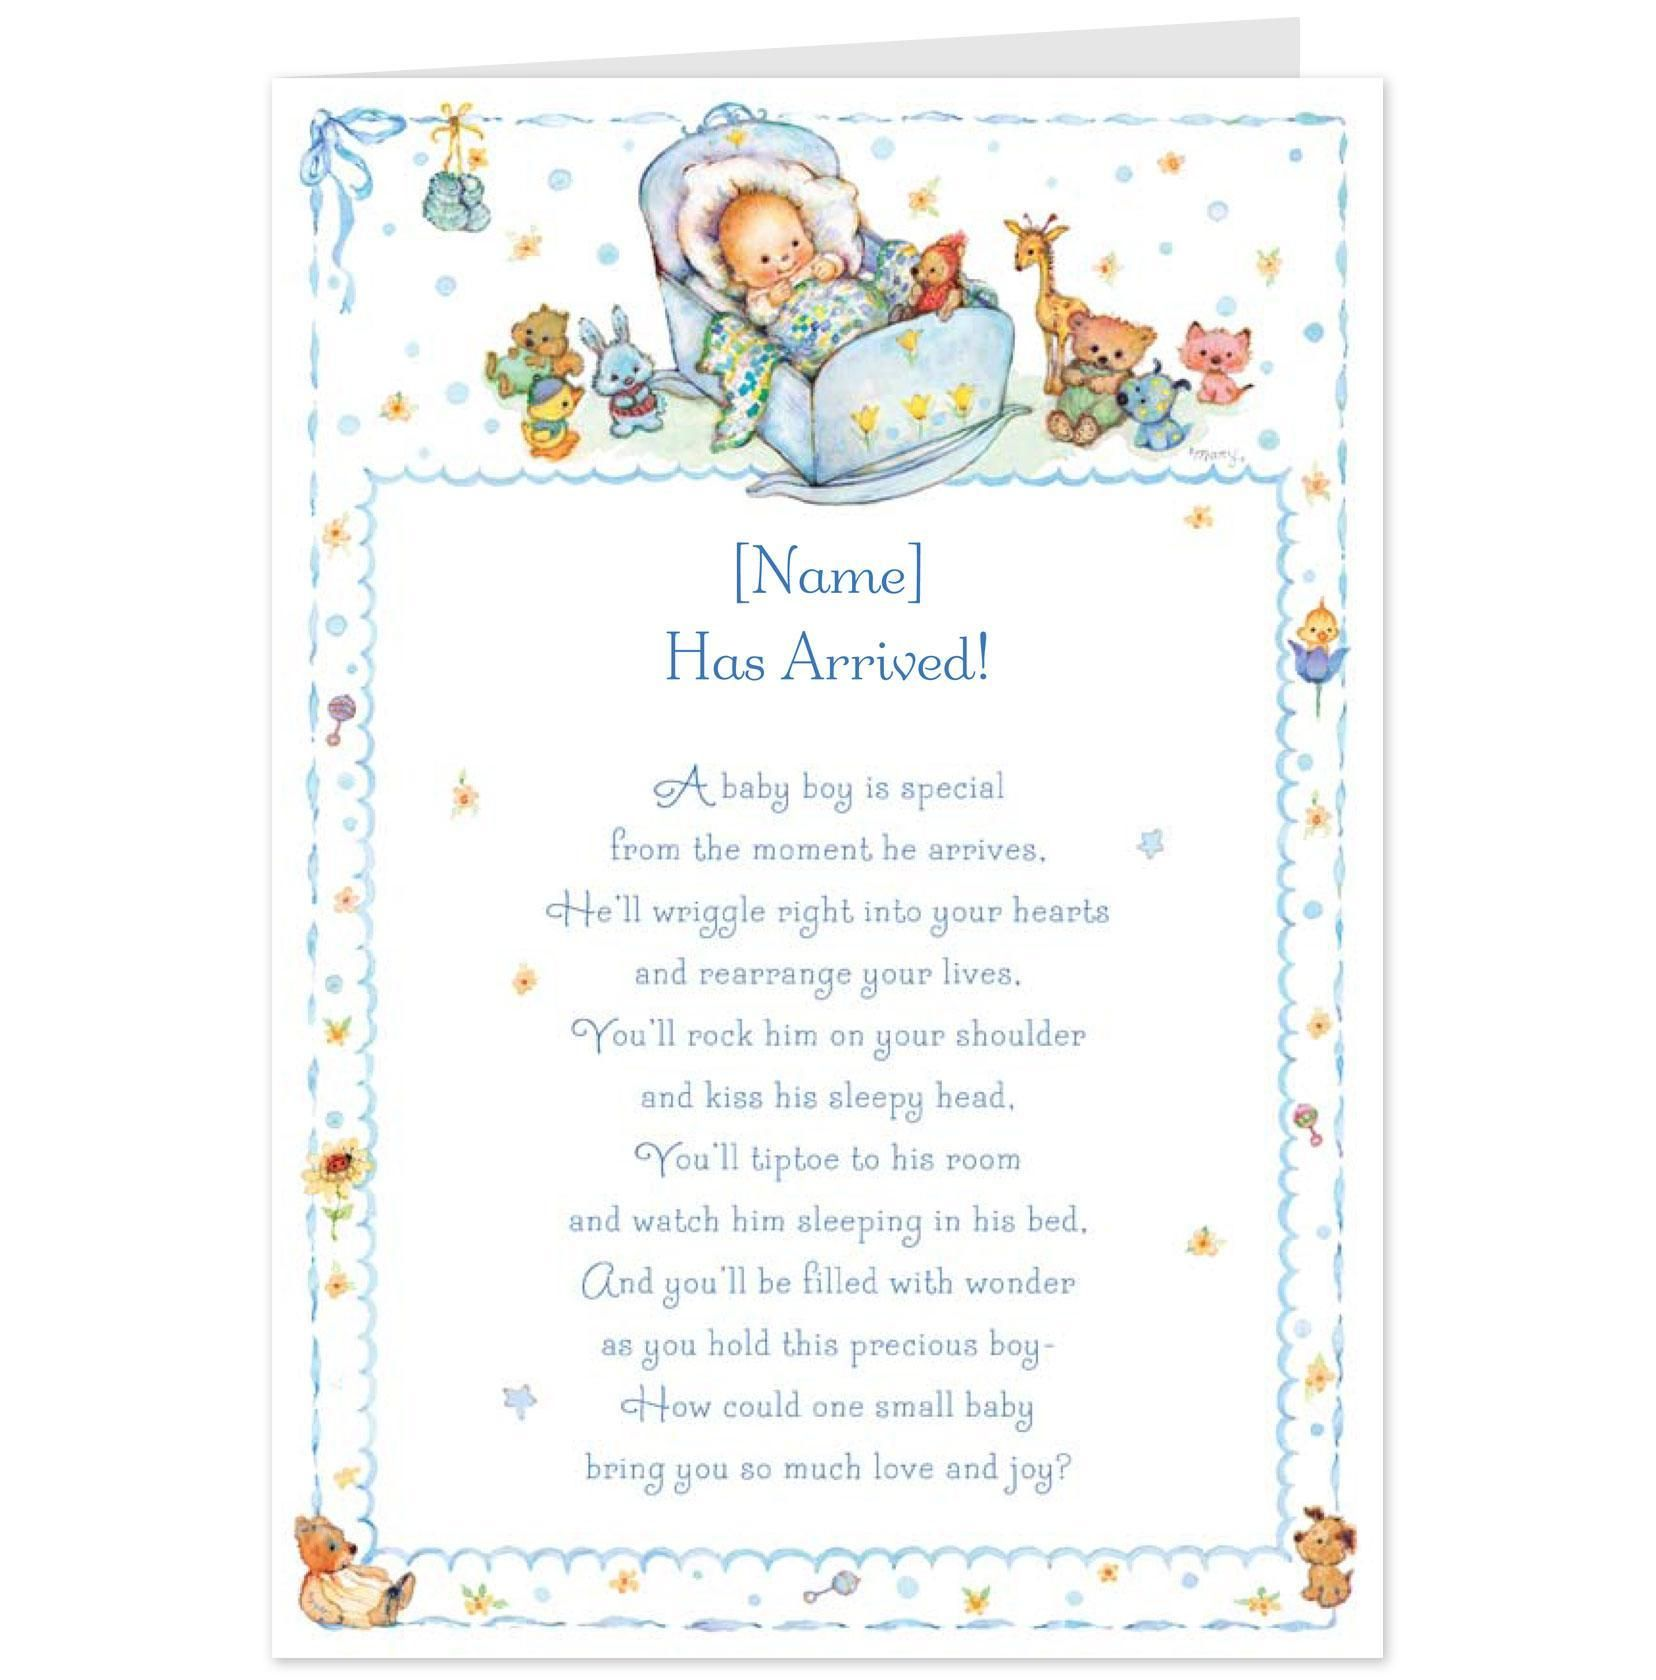 Hallmark Valentines Day Poems Baby Boy Poem Congratulations – Valentines Day Poems for Cards